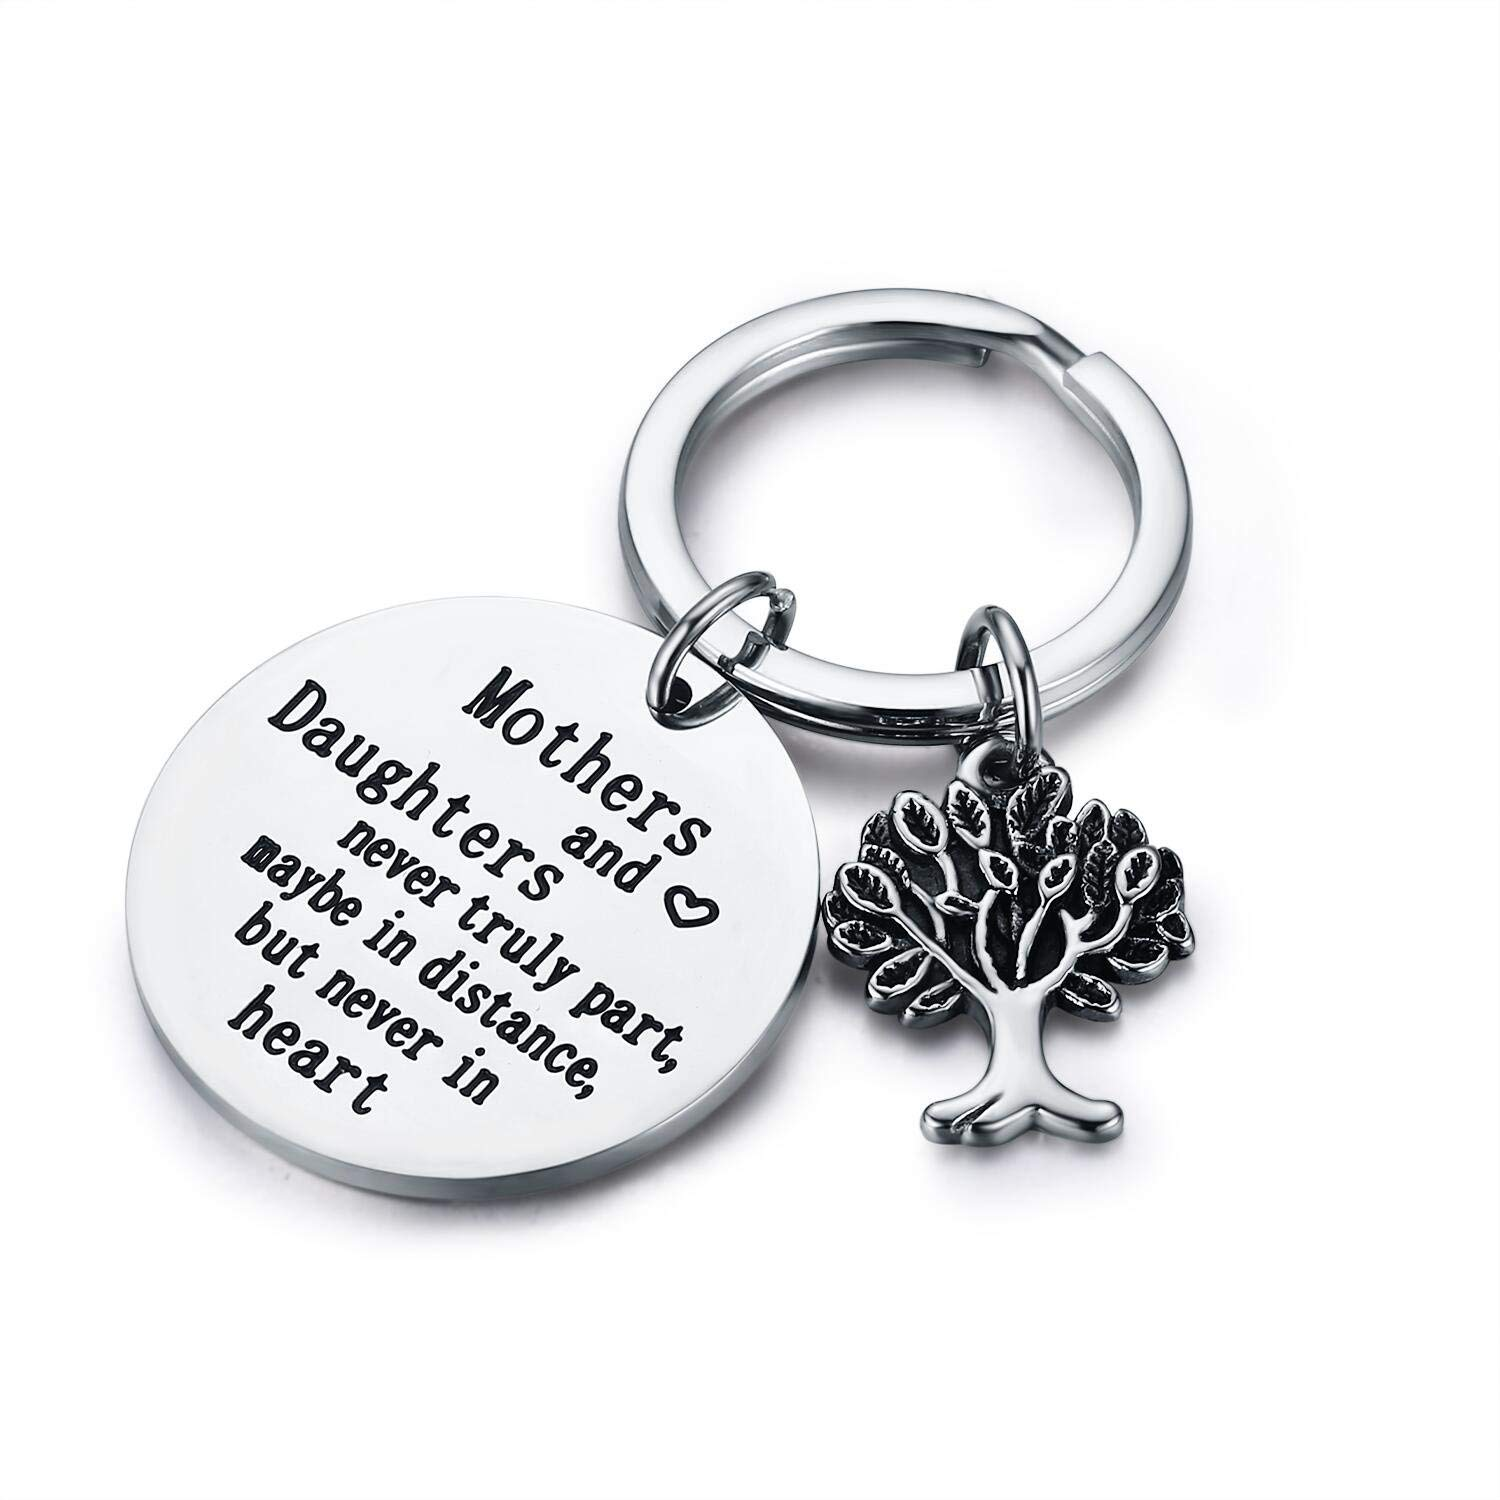 Udobuy Family Tree Keychain Mother Daughter Gift Mothers and Daughters Never Truly Part, Maybe in Distance.Mother Daughter Keychain,Christmas Gifts,Mother's Day Gifts